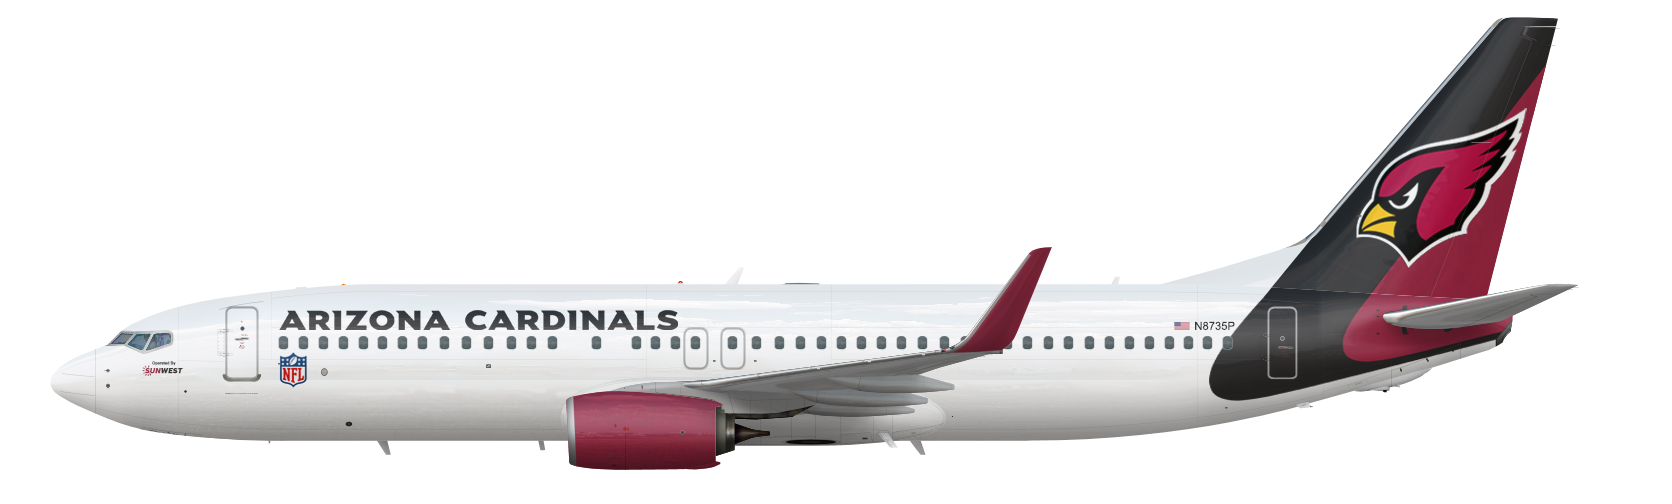 Boeing 737-800 Airzona Cardinals